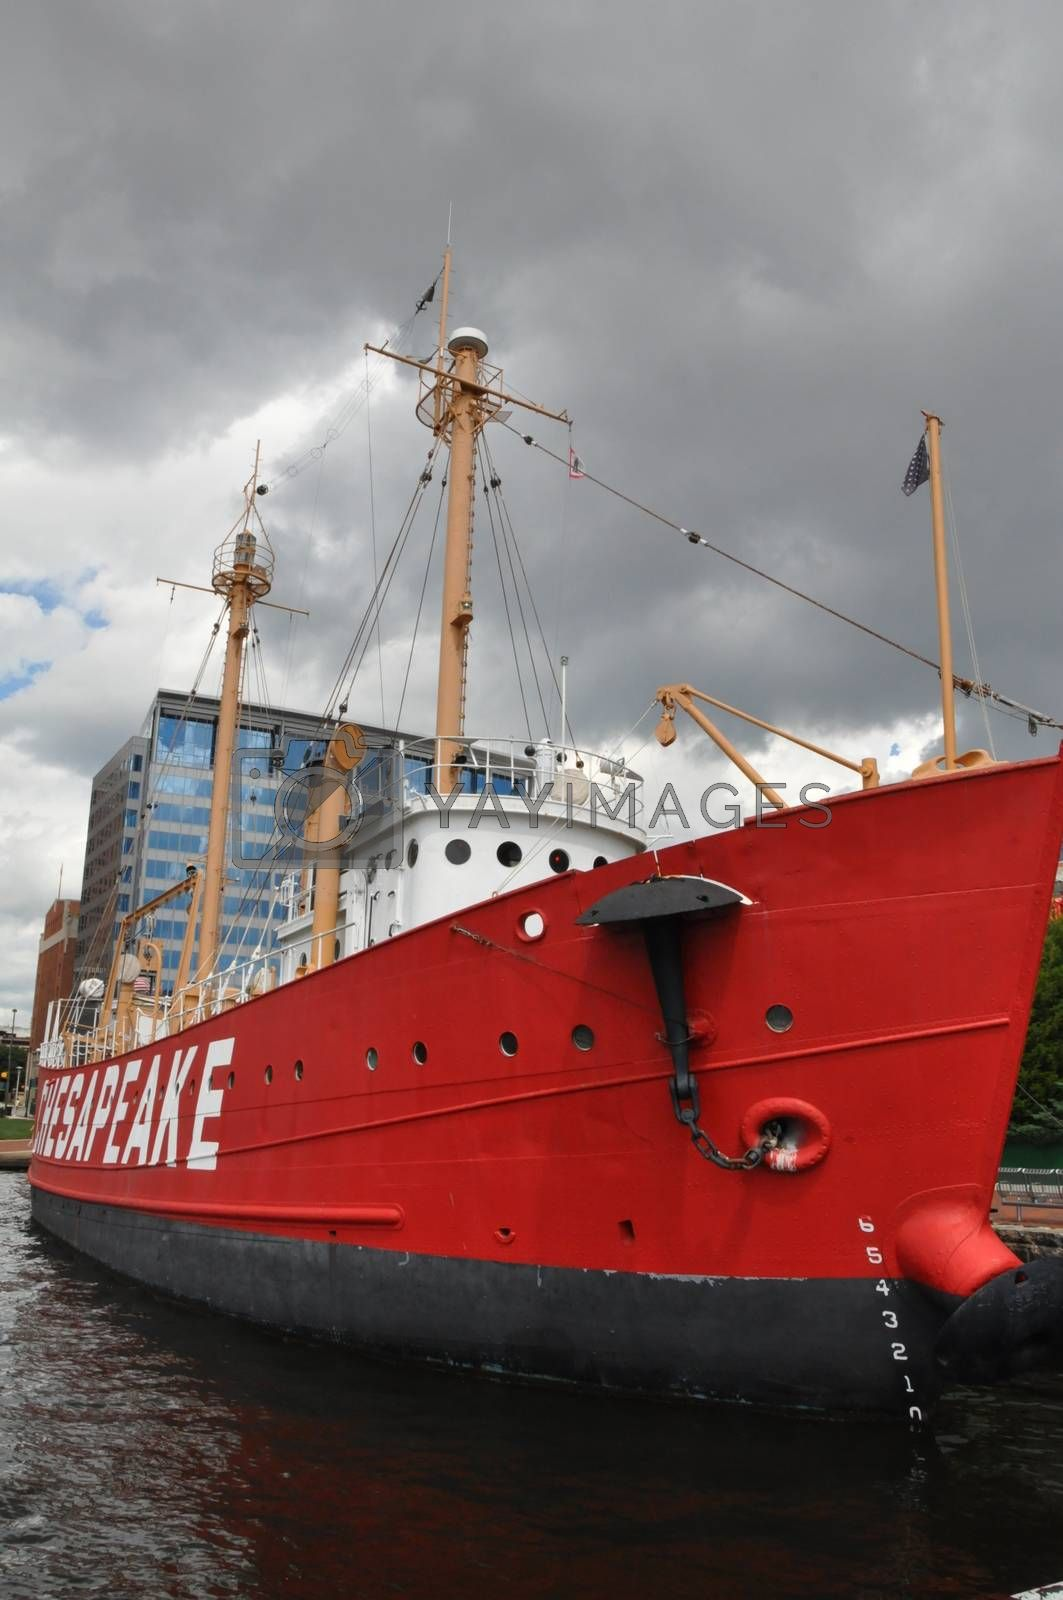 United States lightship Chesapeake (LV-116) docked at the Inner Harbor in Baltimore, Maryland